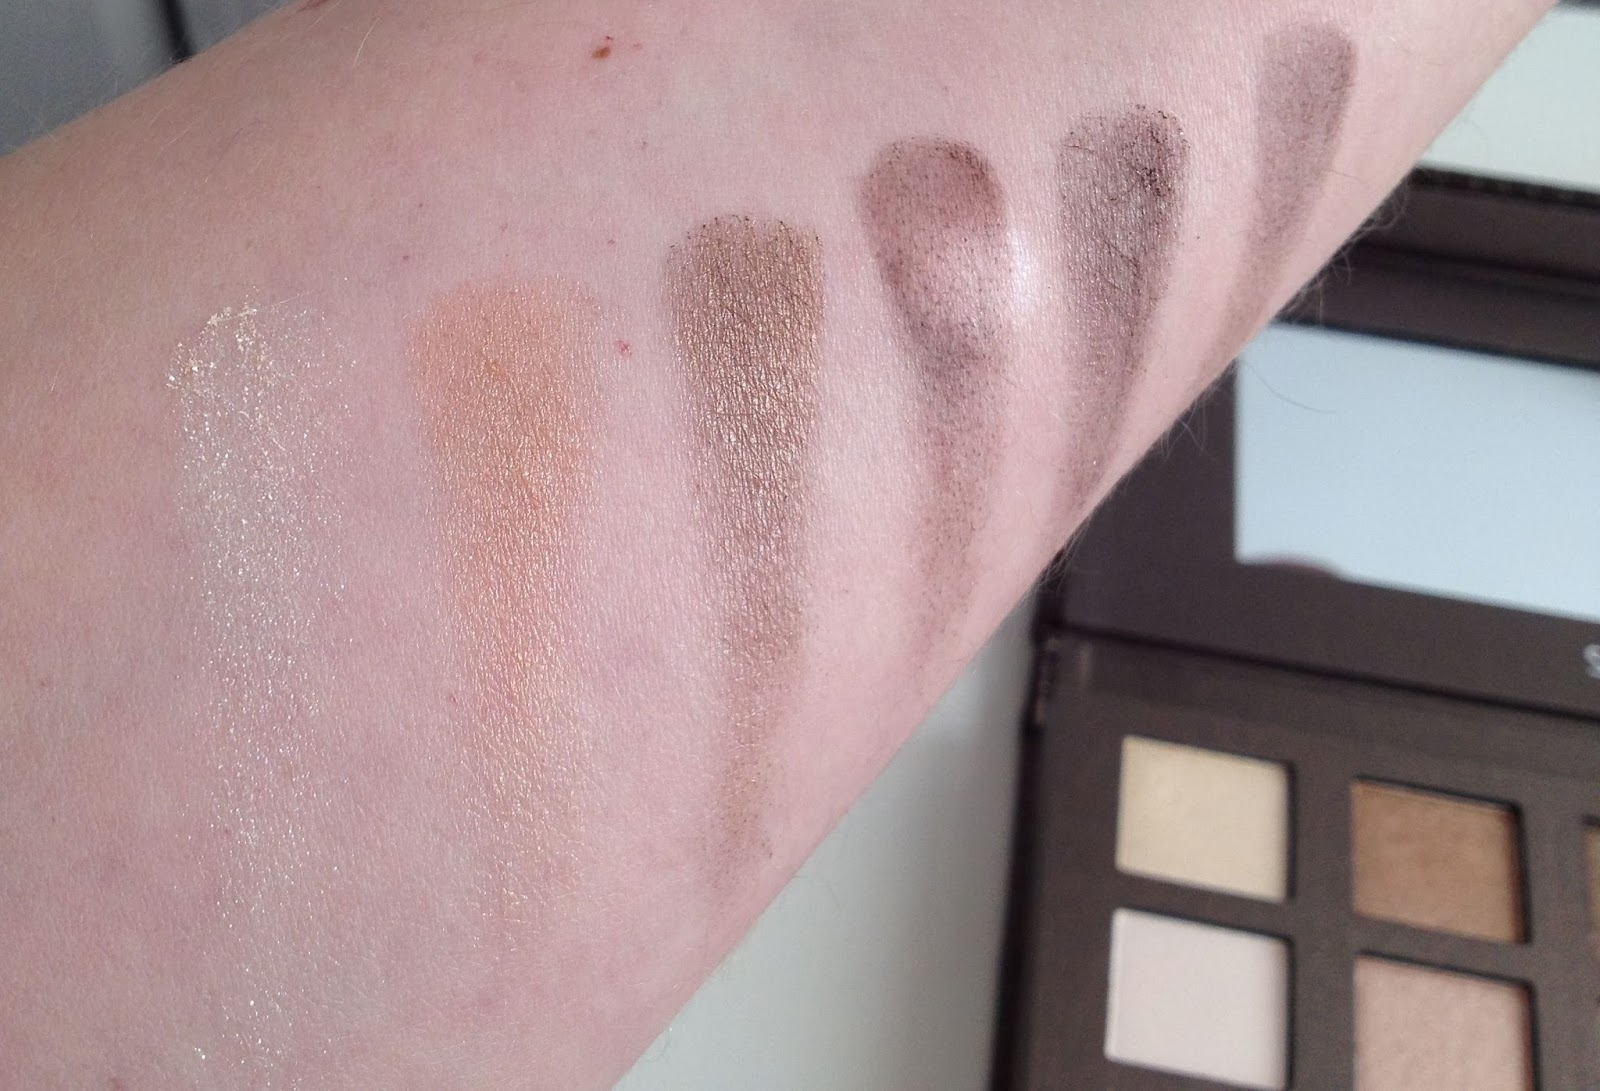 Sephora It Palette - Nude eyeshadow collection swatches: Top row of palette